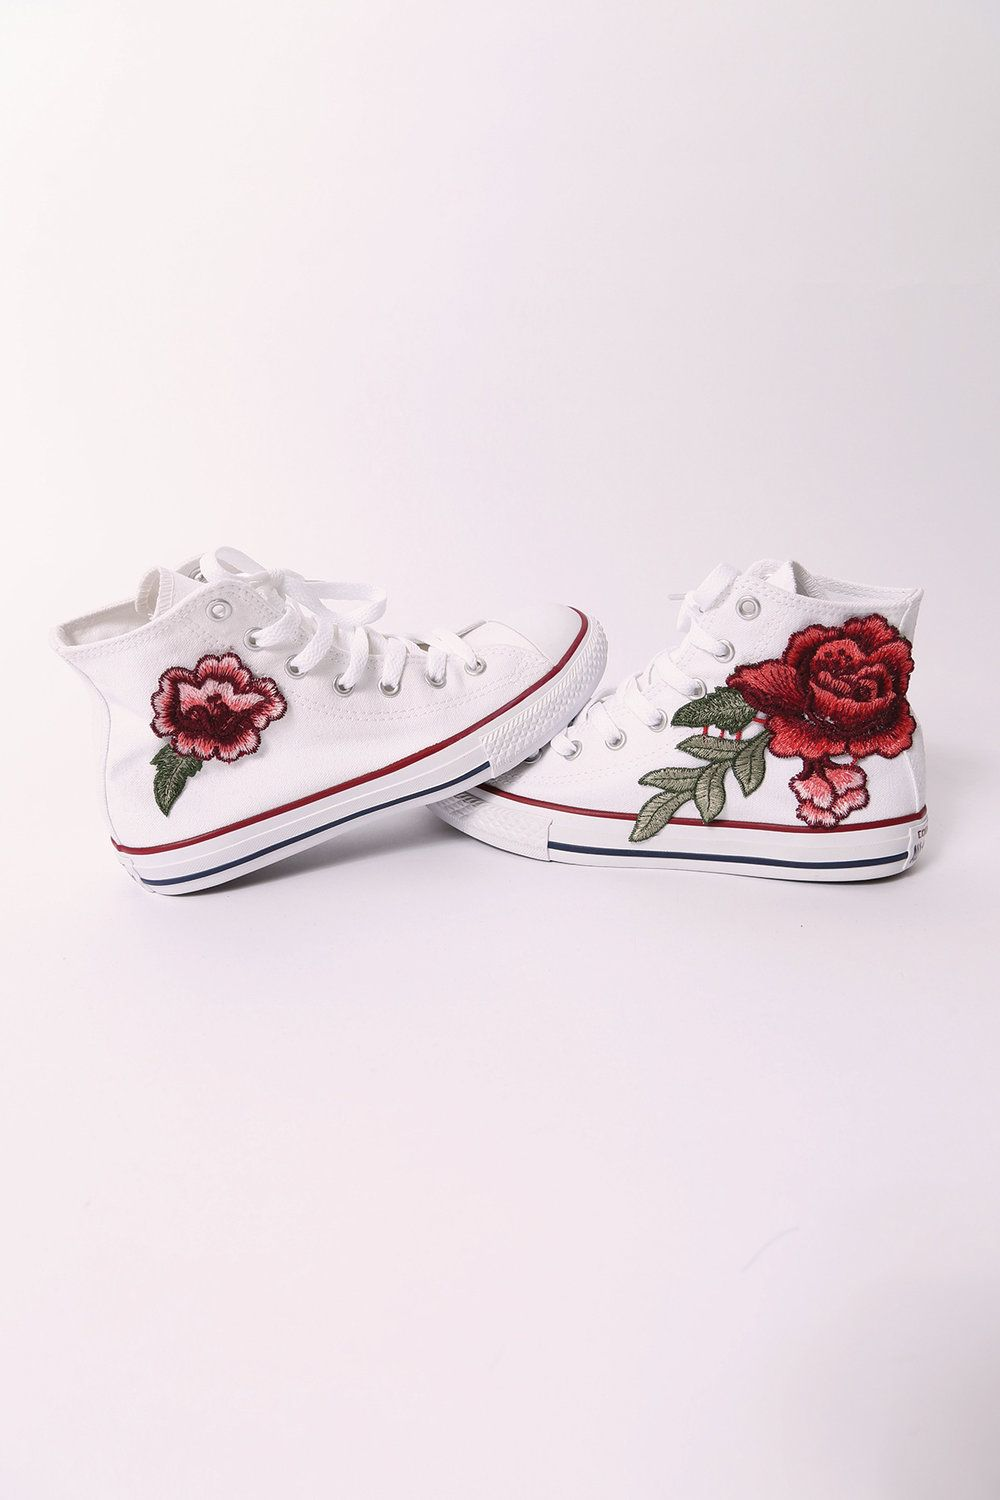 the best attitude 541eb 3a0c5 brand new converse all star high tops with rose patch converse do run  bigger than normal